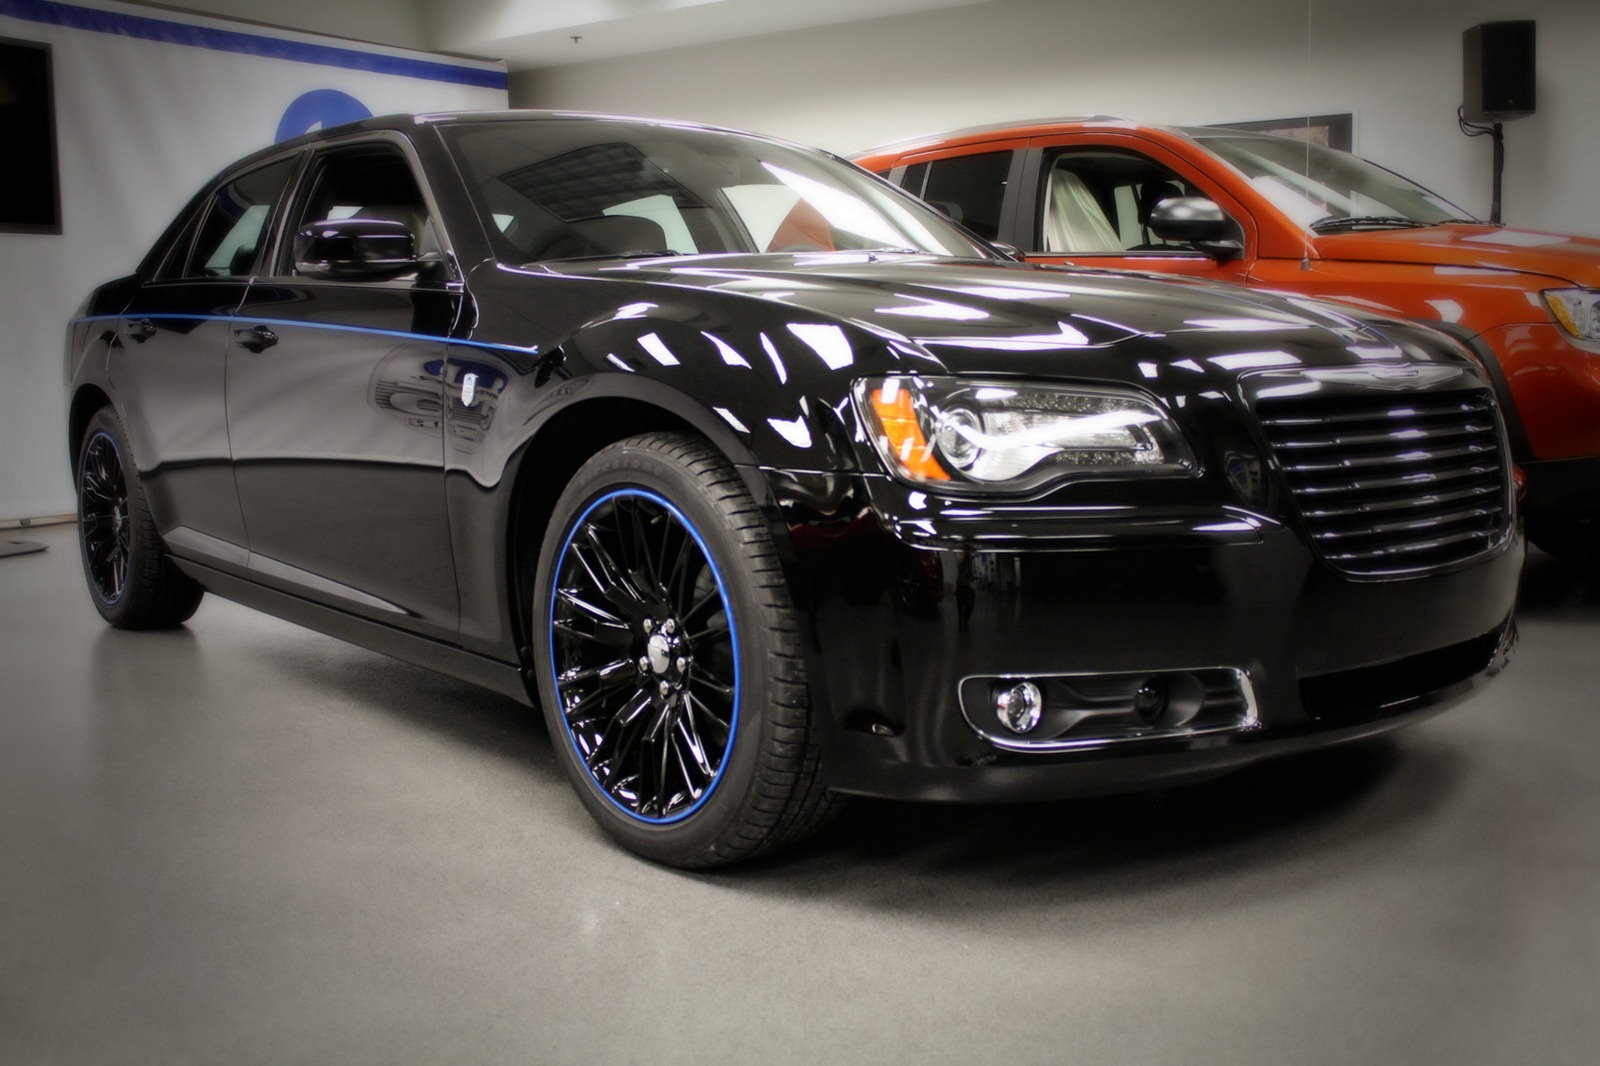 hight resolution of chrysler 300 mopar special edition prepared for chicago